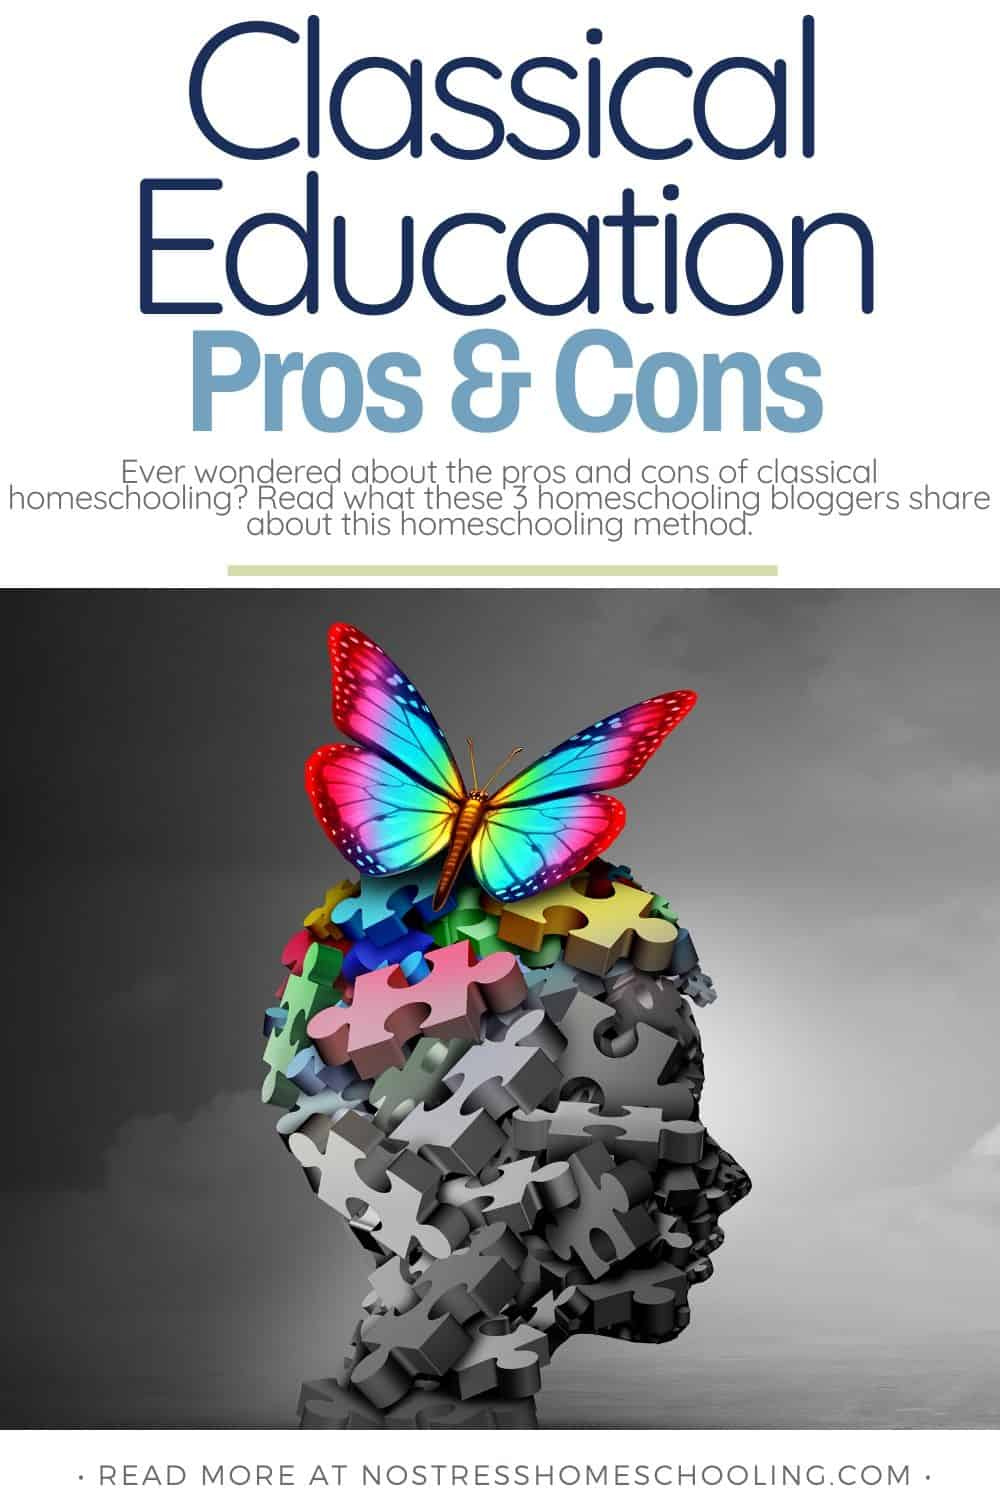 Ever wondered about the pros and cons of classical homeschooling? Well read what these 3 homeschooling bloggers share about this homeschooling method.